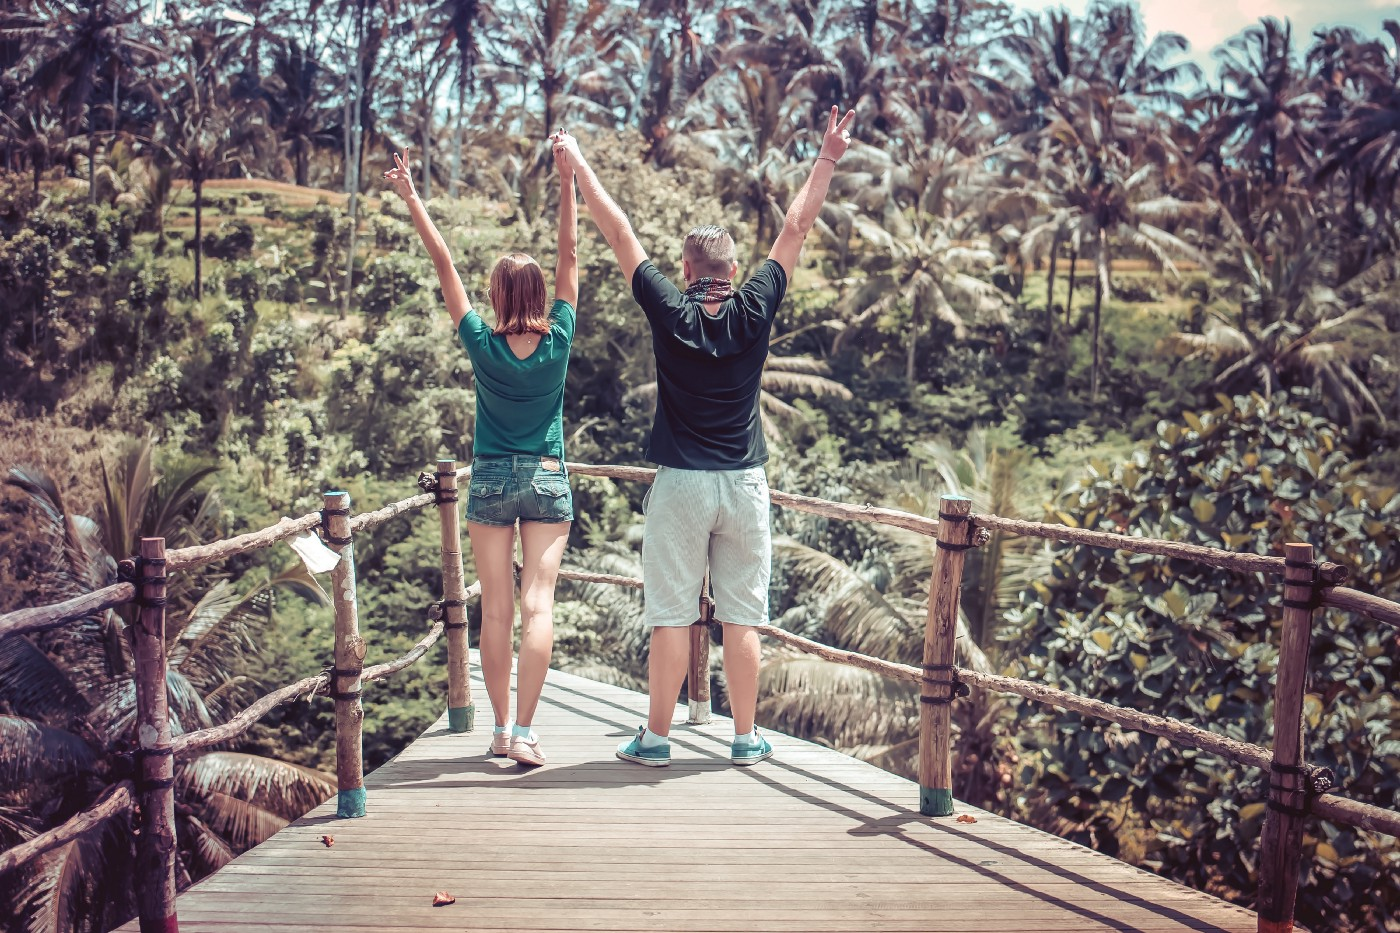 Two people hold their arms up in celebration on a bridge and forest setting